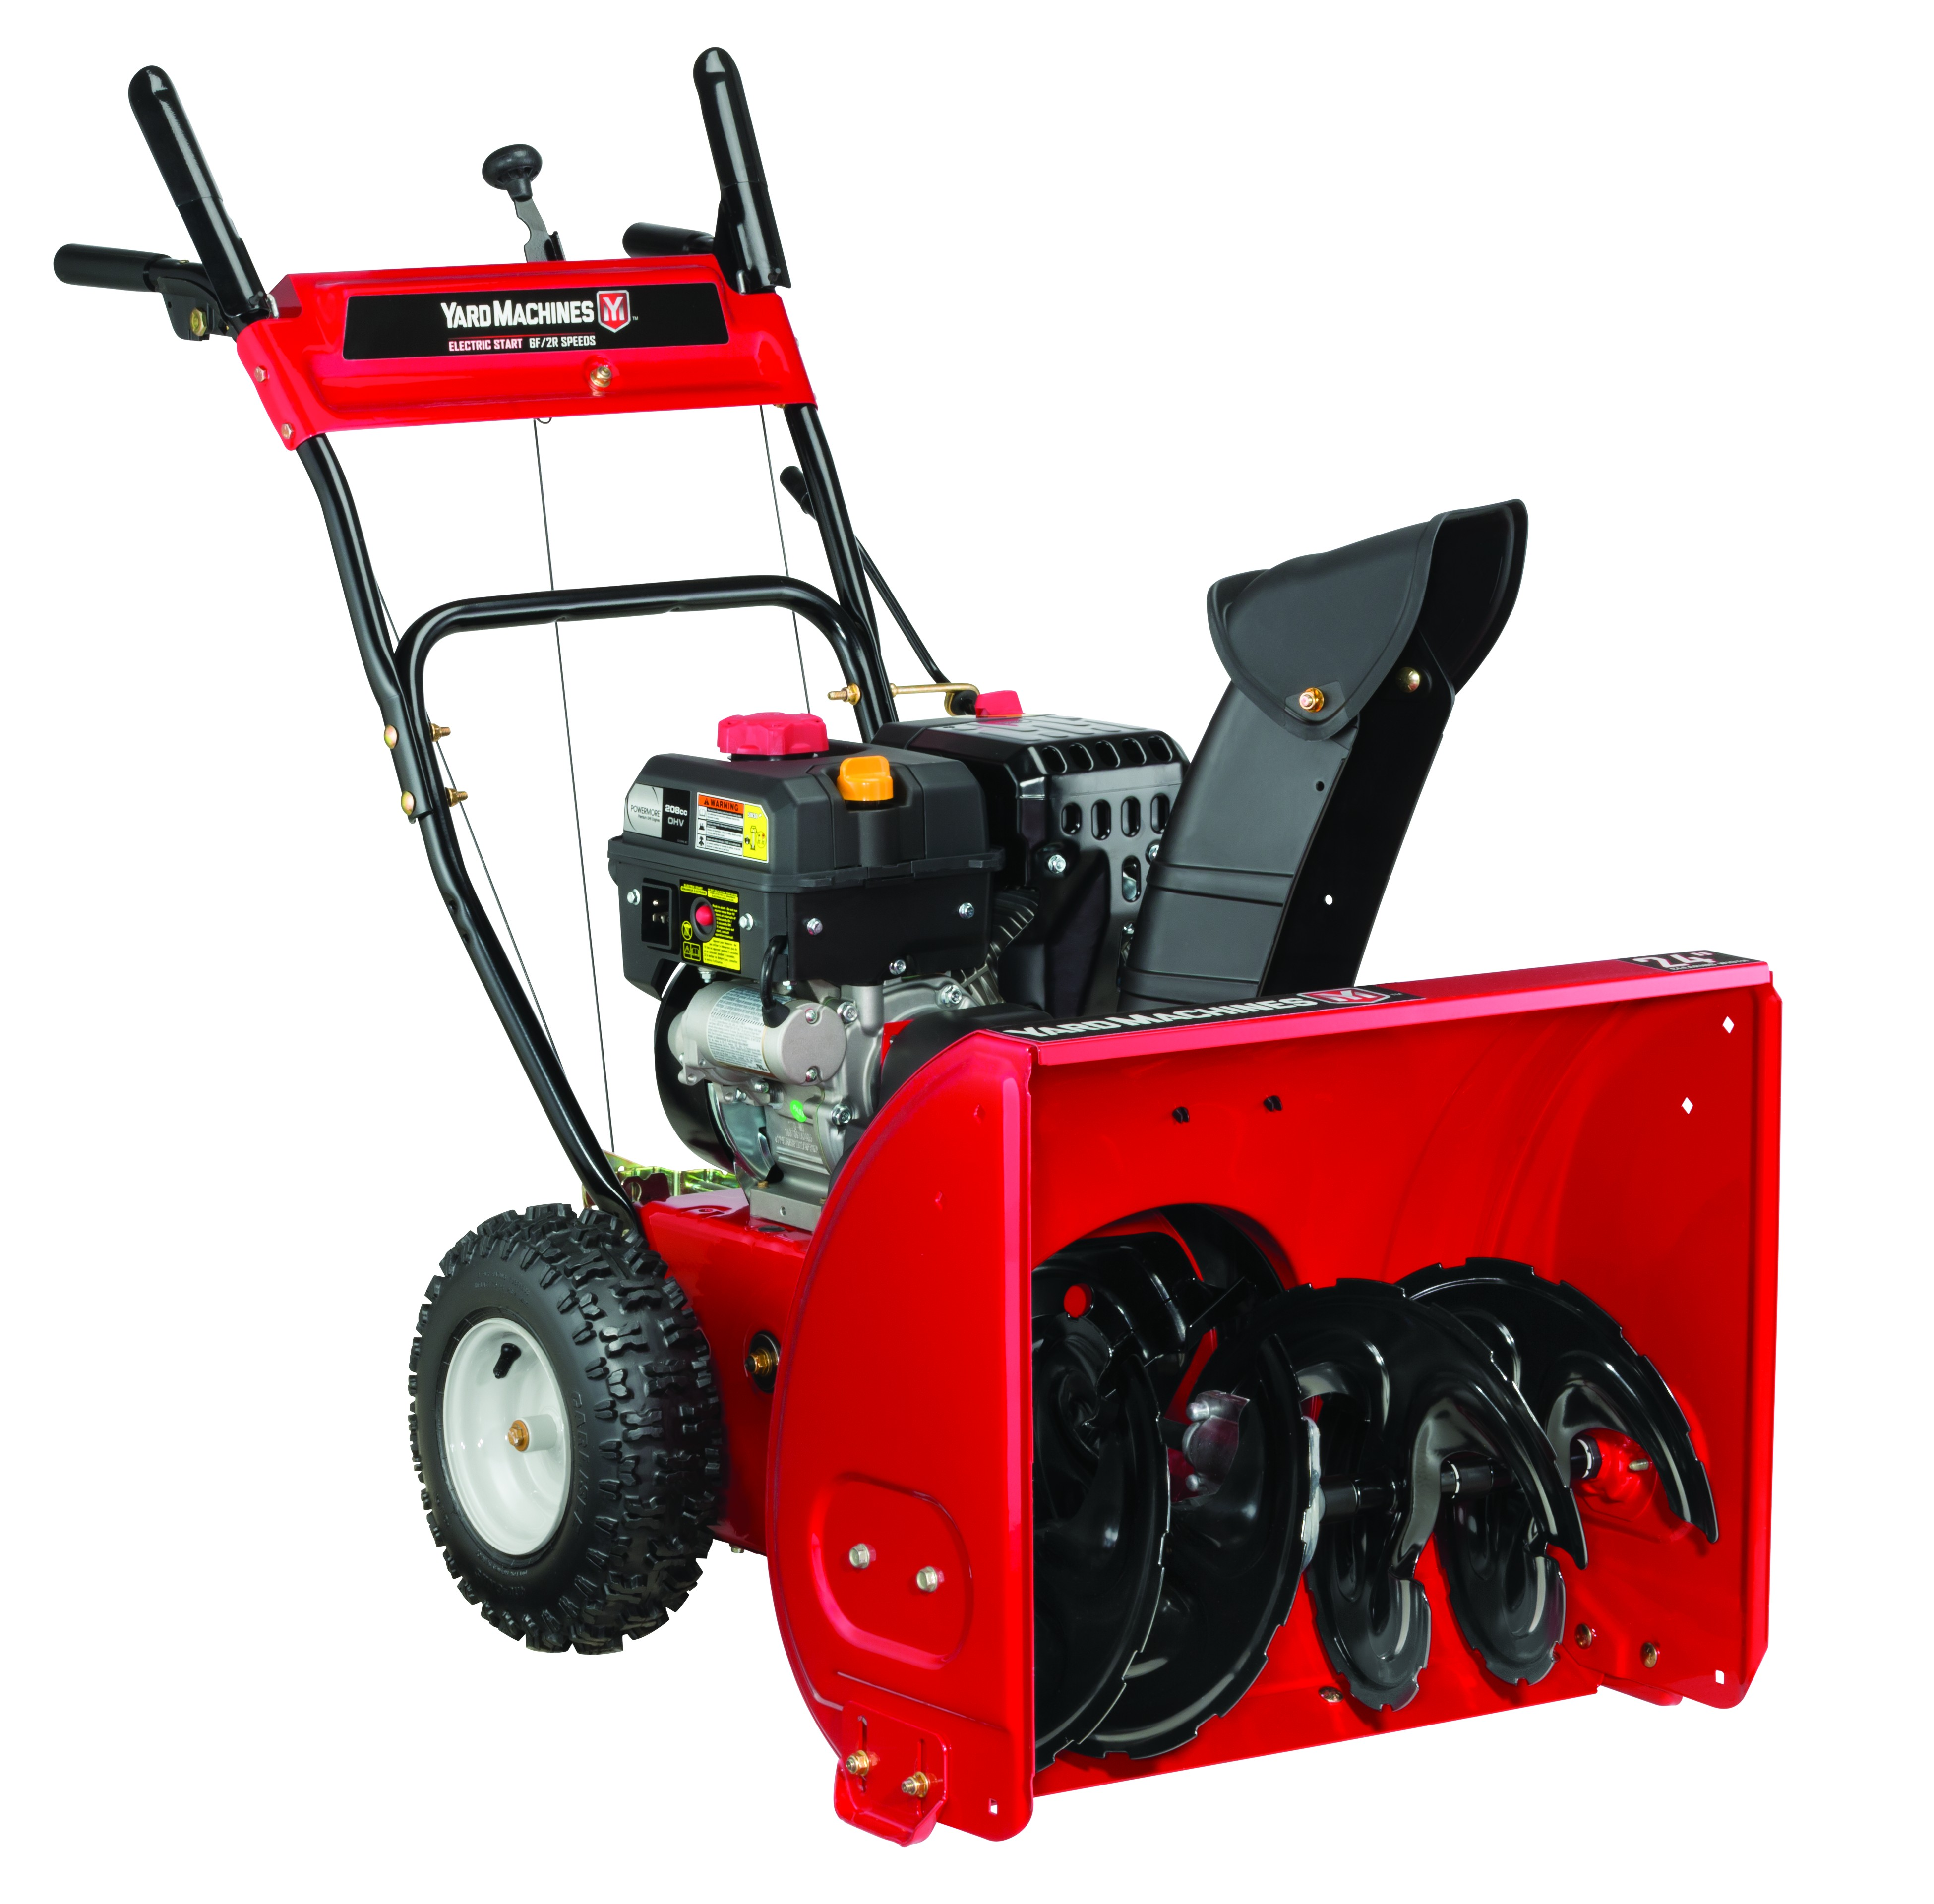 "Yard Machines 24"" Two-Stage Snow Blower with Electric Start"